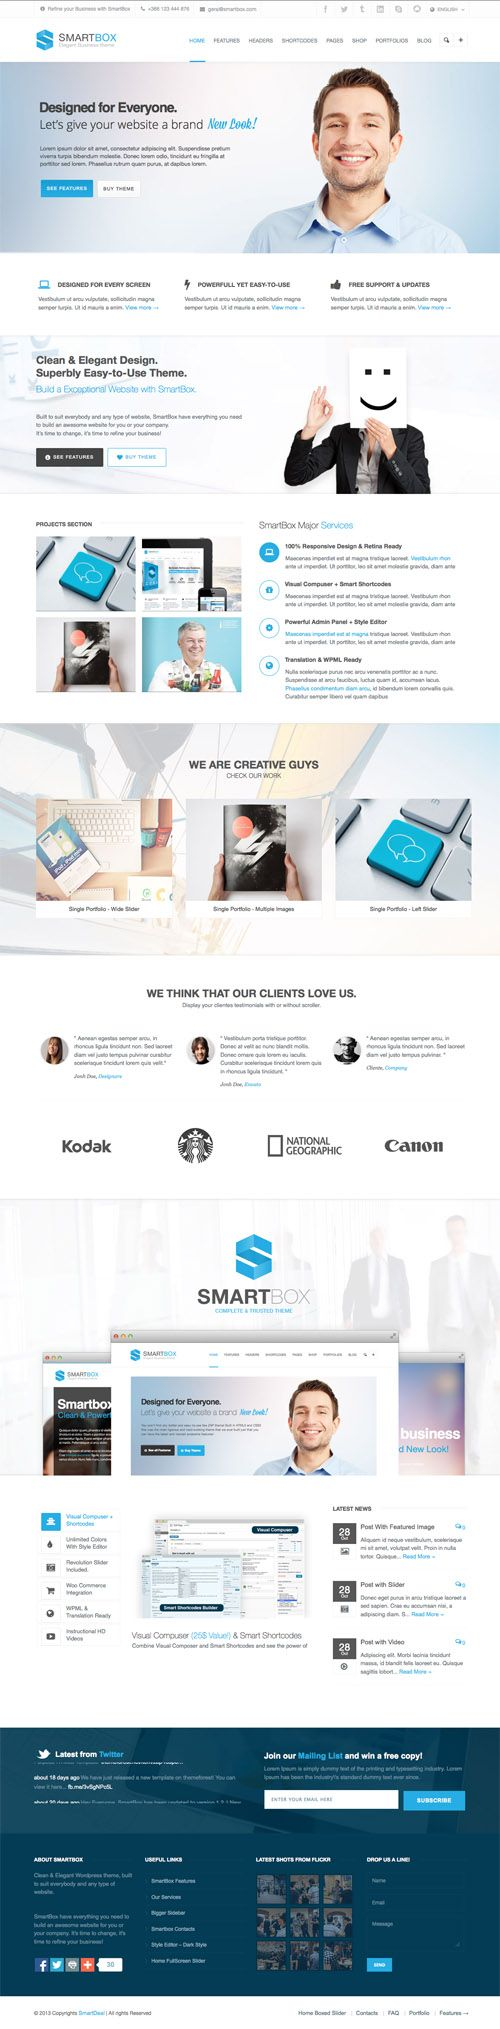 SmartBox PSD Template #psdtemplates #onepagetemplates #businesstemplates #websitetemplates